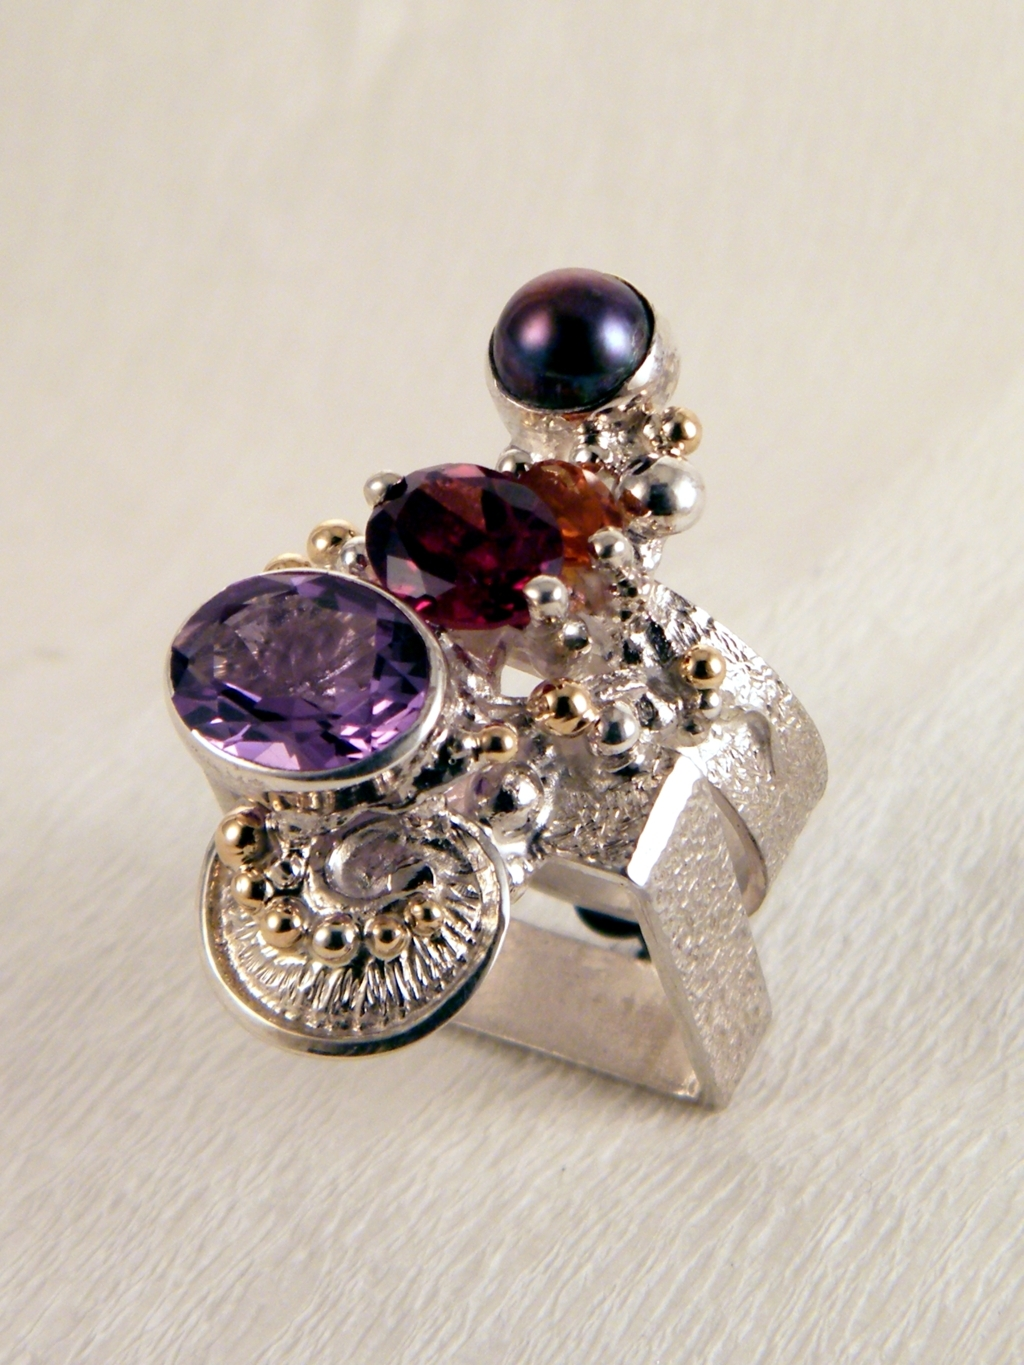 gregory pyra piro cyber ring 2631, rings in art and craft galleries, sculptural jewellery, mixed metal art jewellery in silver and gold, cyber ring with amethyst and garnet, cyber ring with citrine and garnet, cyber ring with citrine and amethyst, cyber ring with pearl